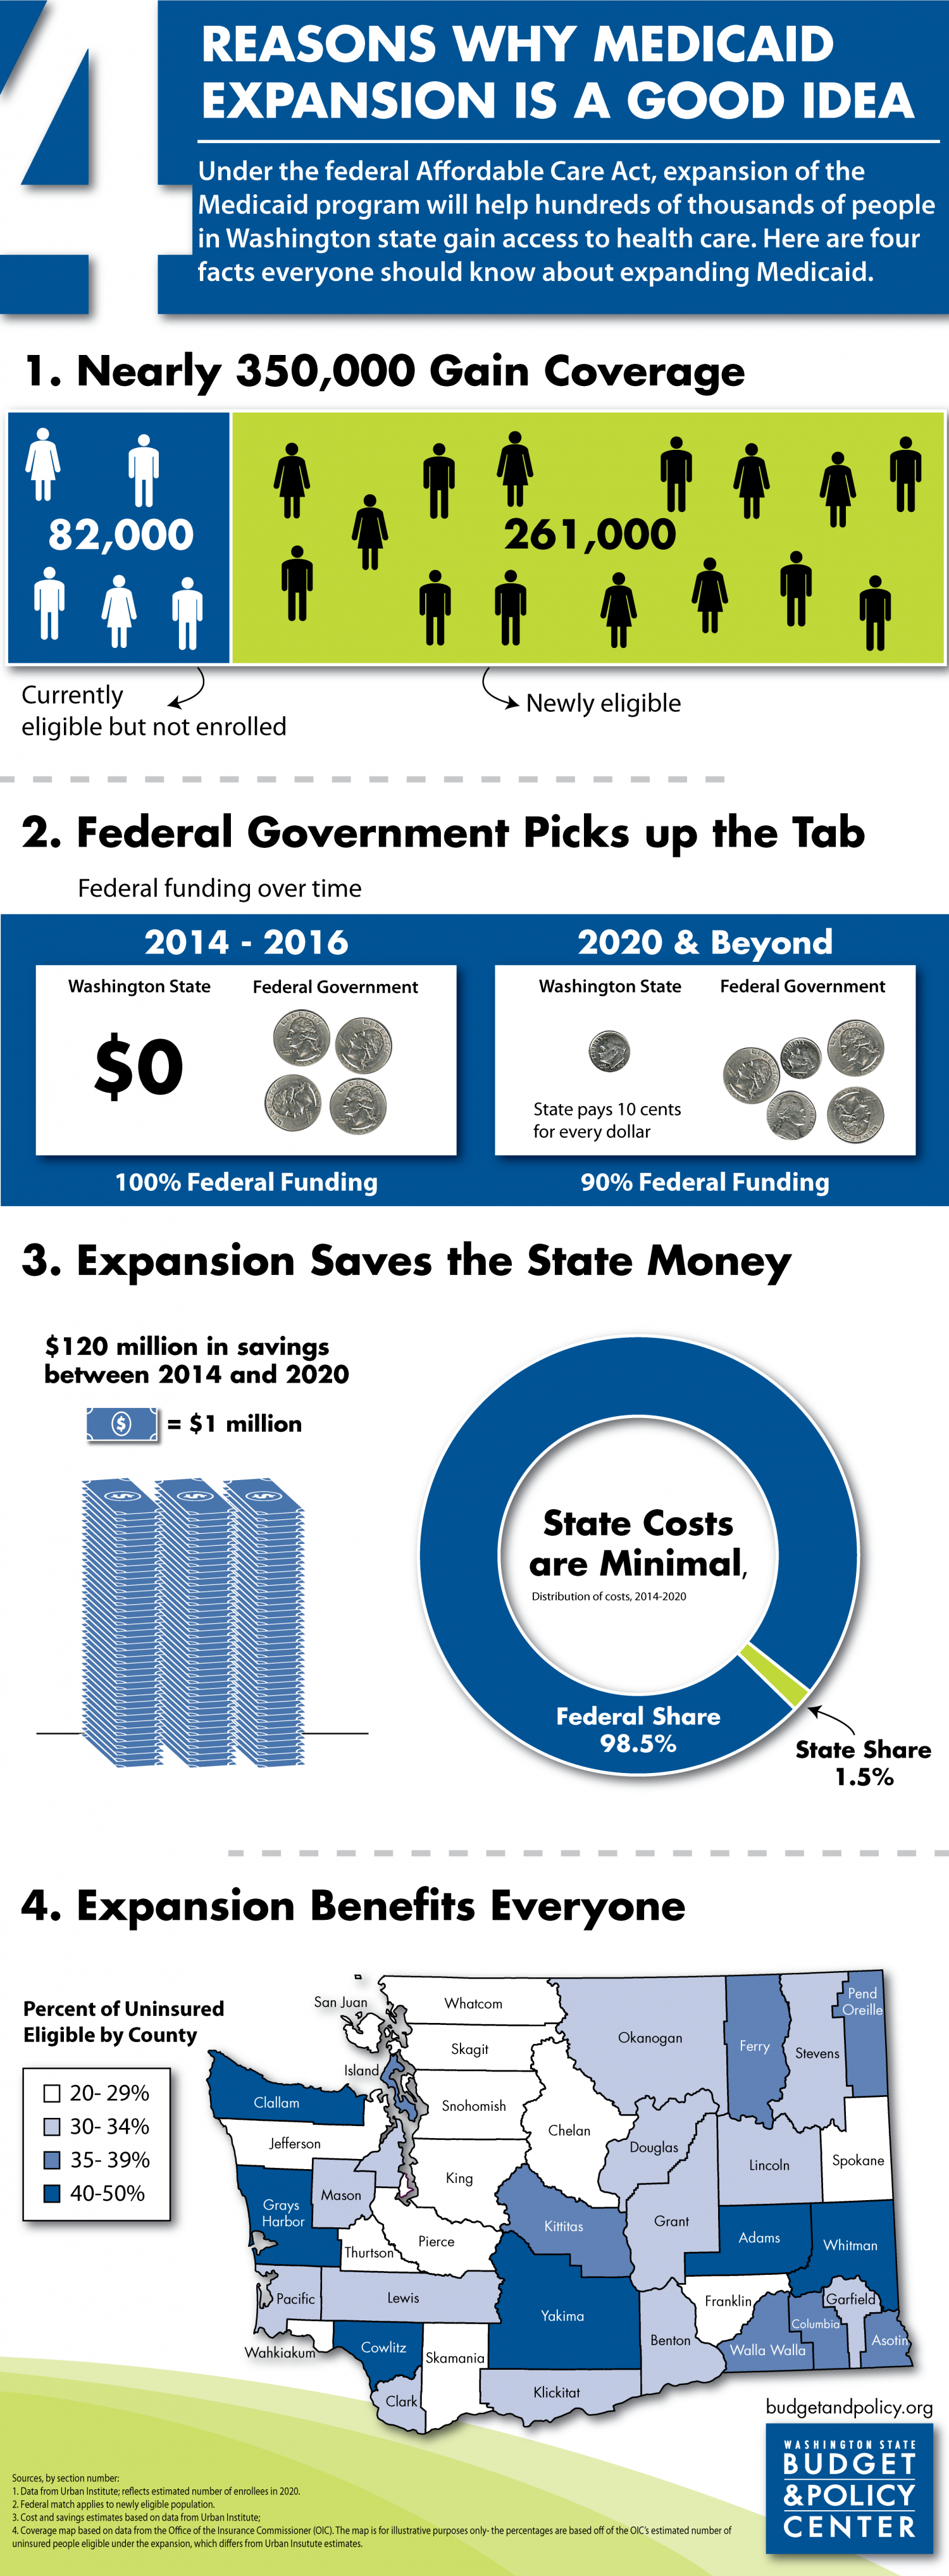 Reasons Behind The Medicaid Expansion's Good Idea Infographic